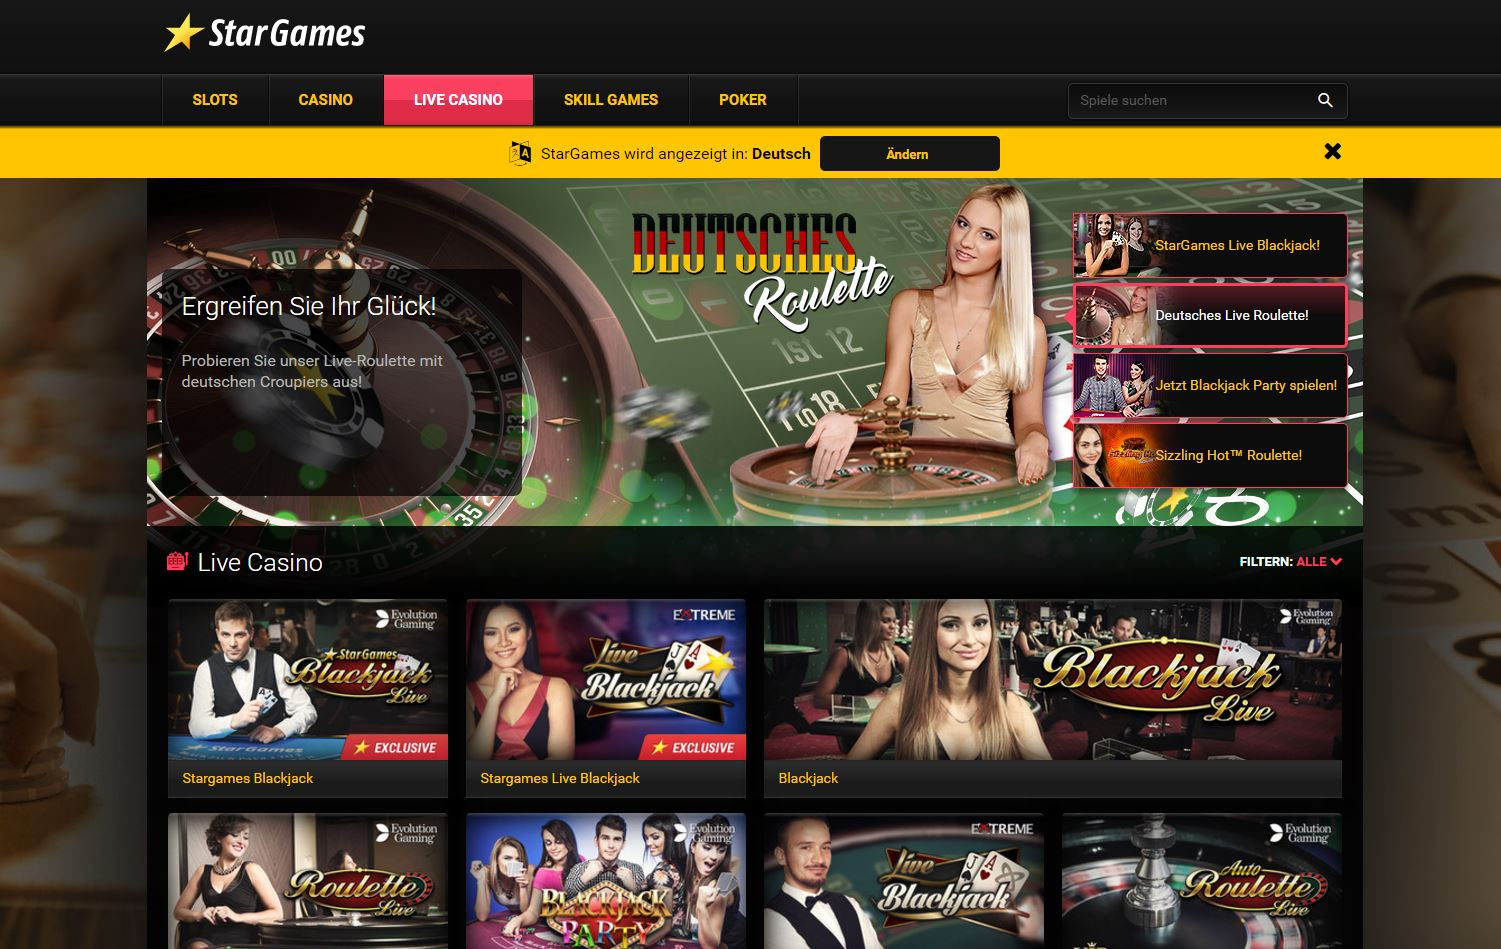 seriöses online casino on line casino